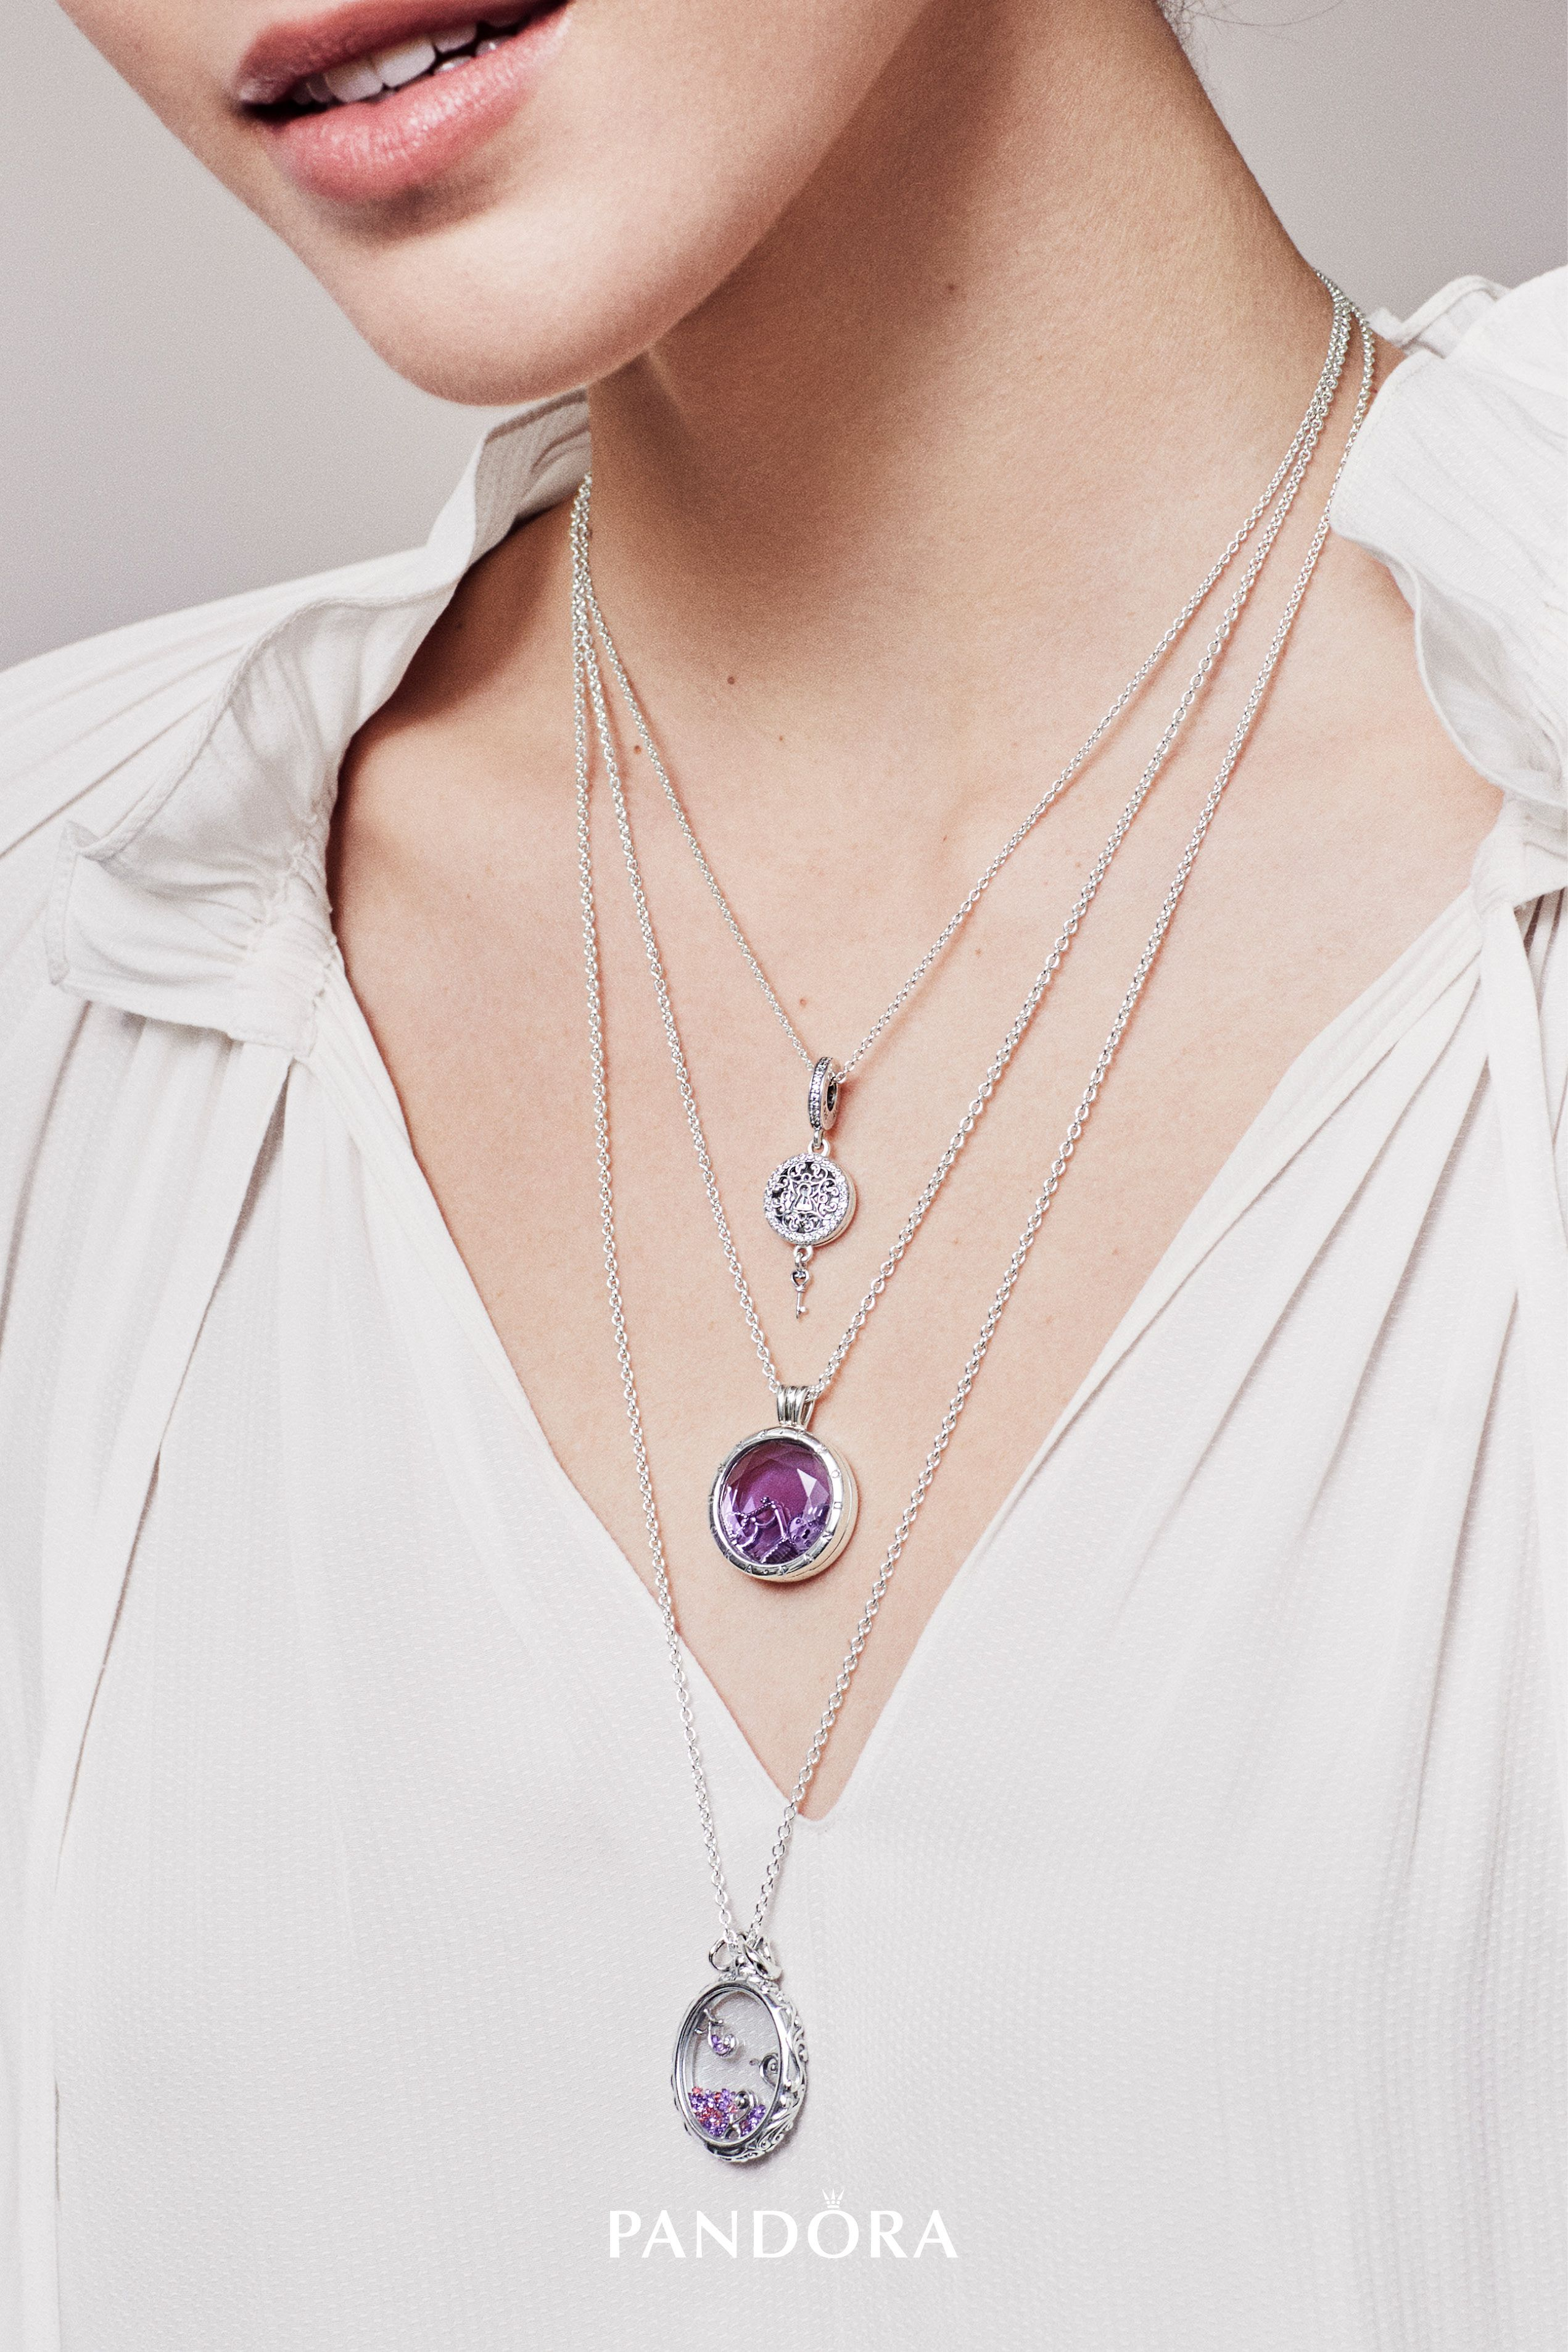 Wear Your Memories On Your Fingers With The New Floating Locket Ring Regarding Latest Pandora Logo Pavé Heart Locket Element Necklaces (View 25 of 25)